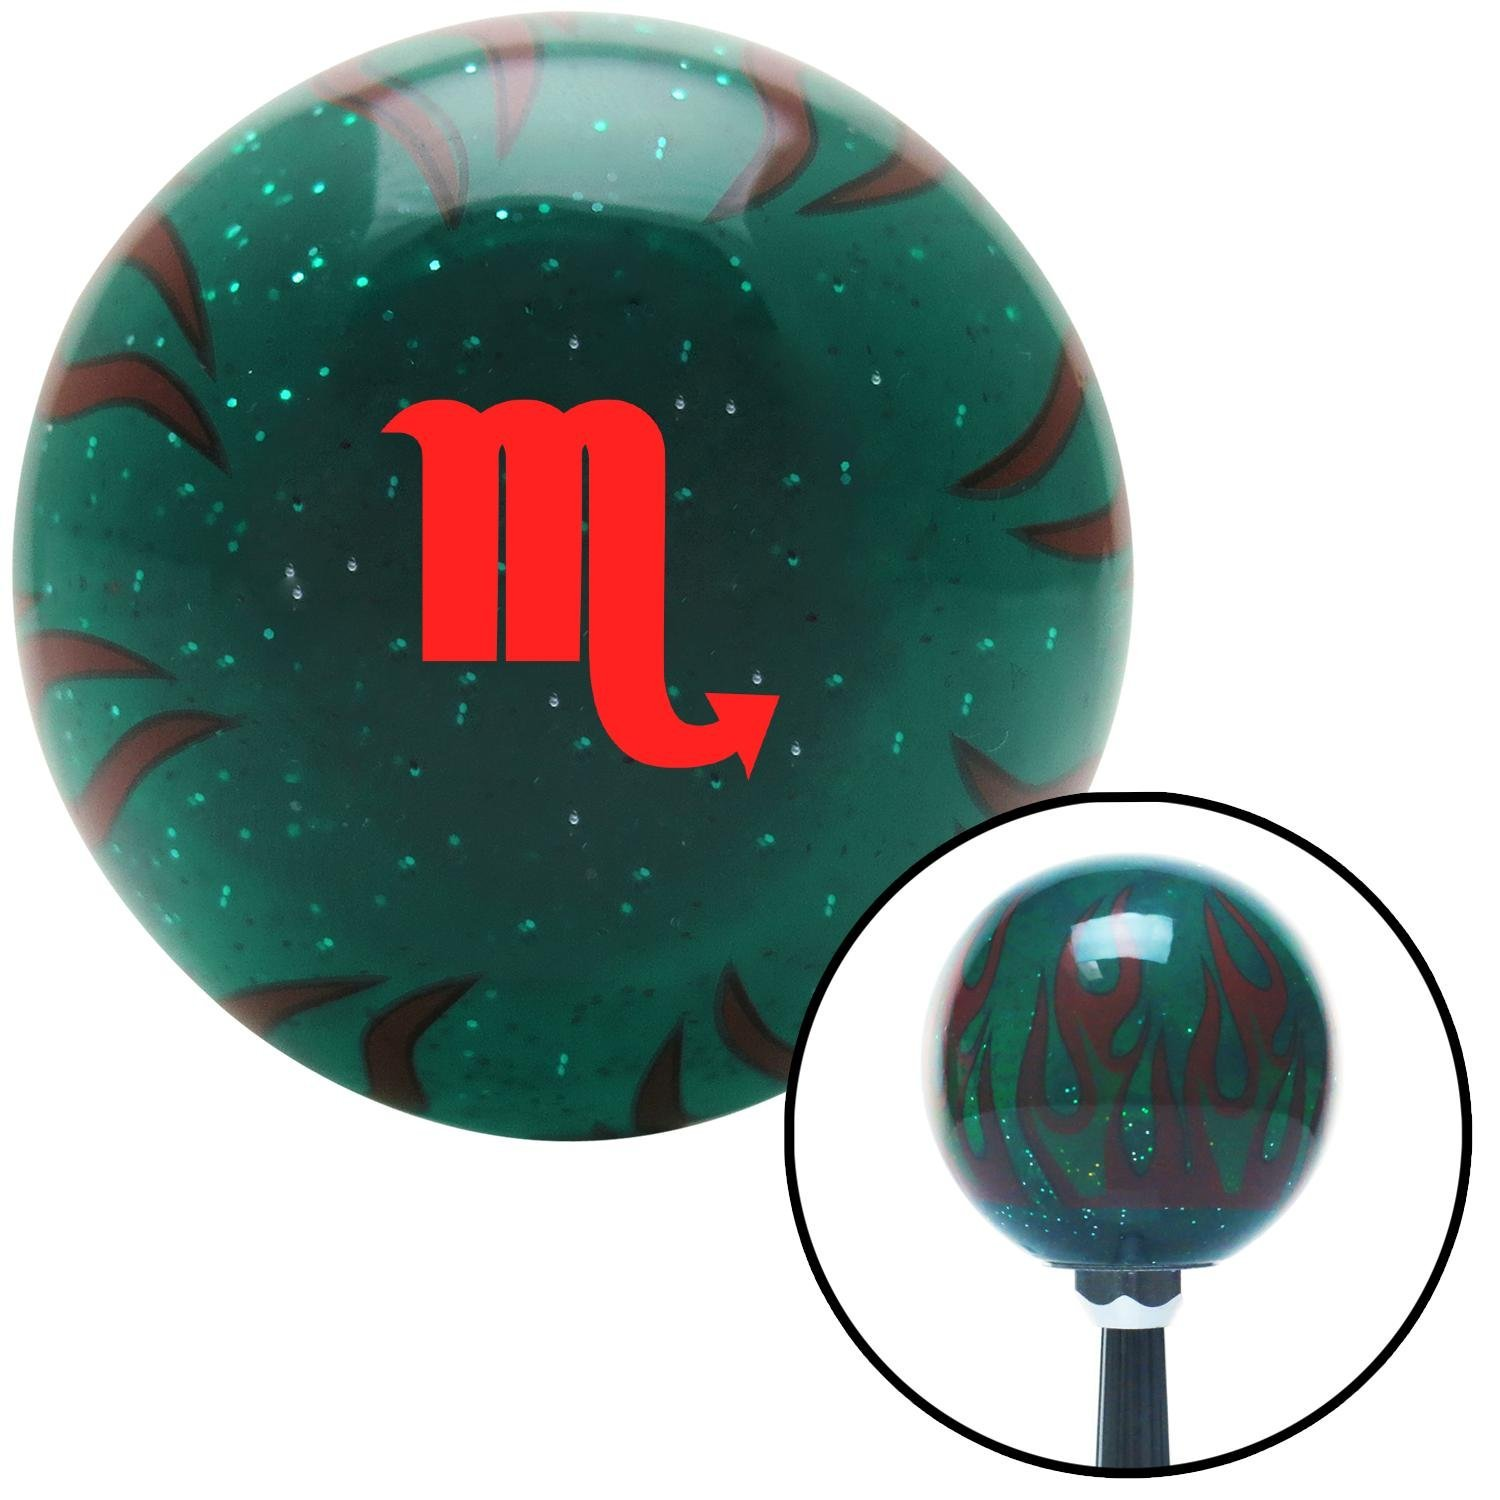 American Shifter 300371 Shift Knob Red Scorpio Green Flame Metal Flake with M16 x 1.5 Insert